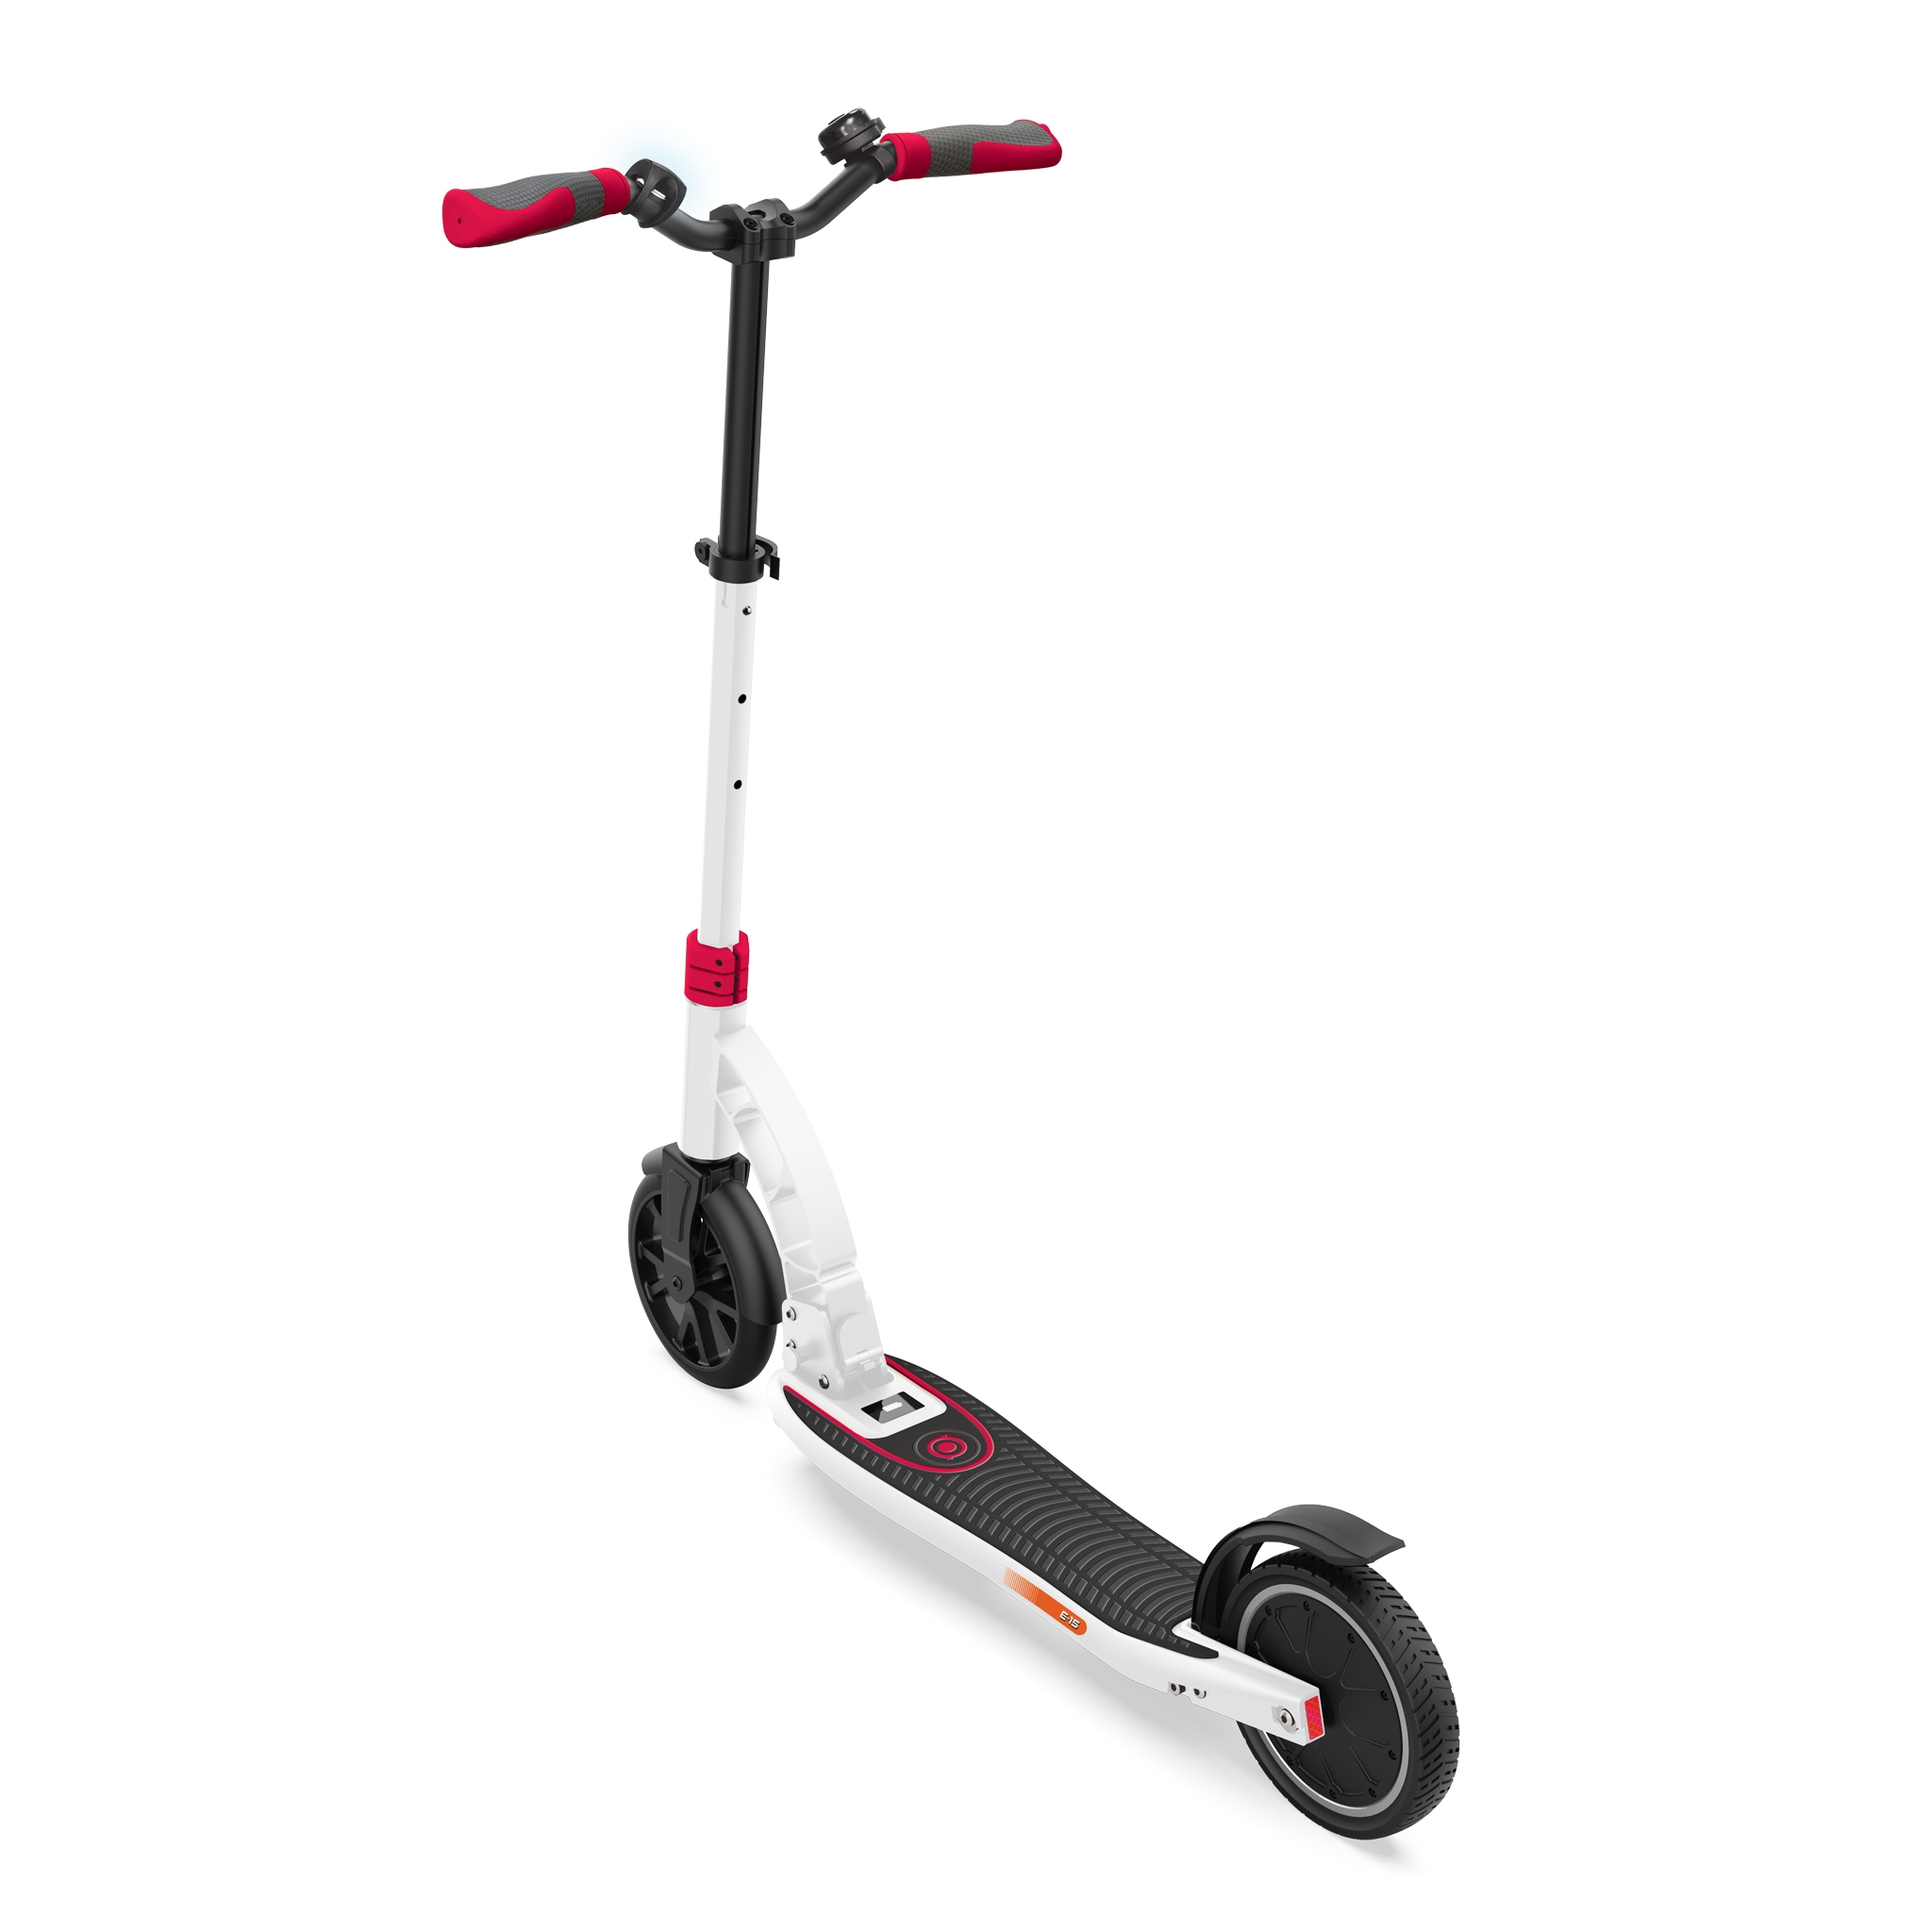 Globber-ONE-K-E-MOTION-15-safe-foldable-electric-scooter-for-teens-and-young-adults-with-dual-brake system-white-red